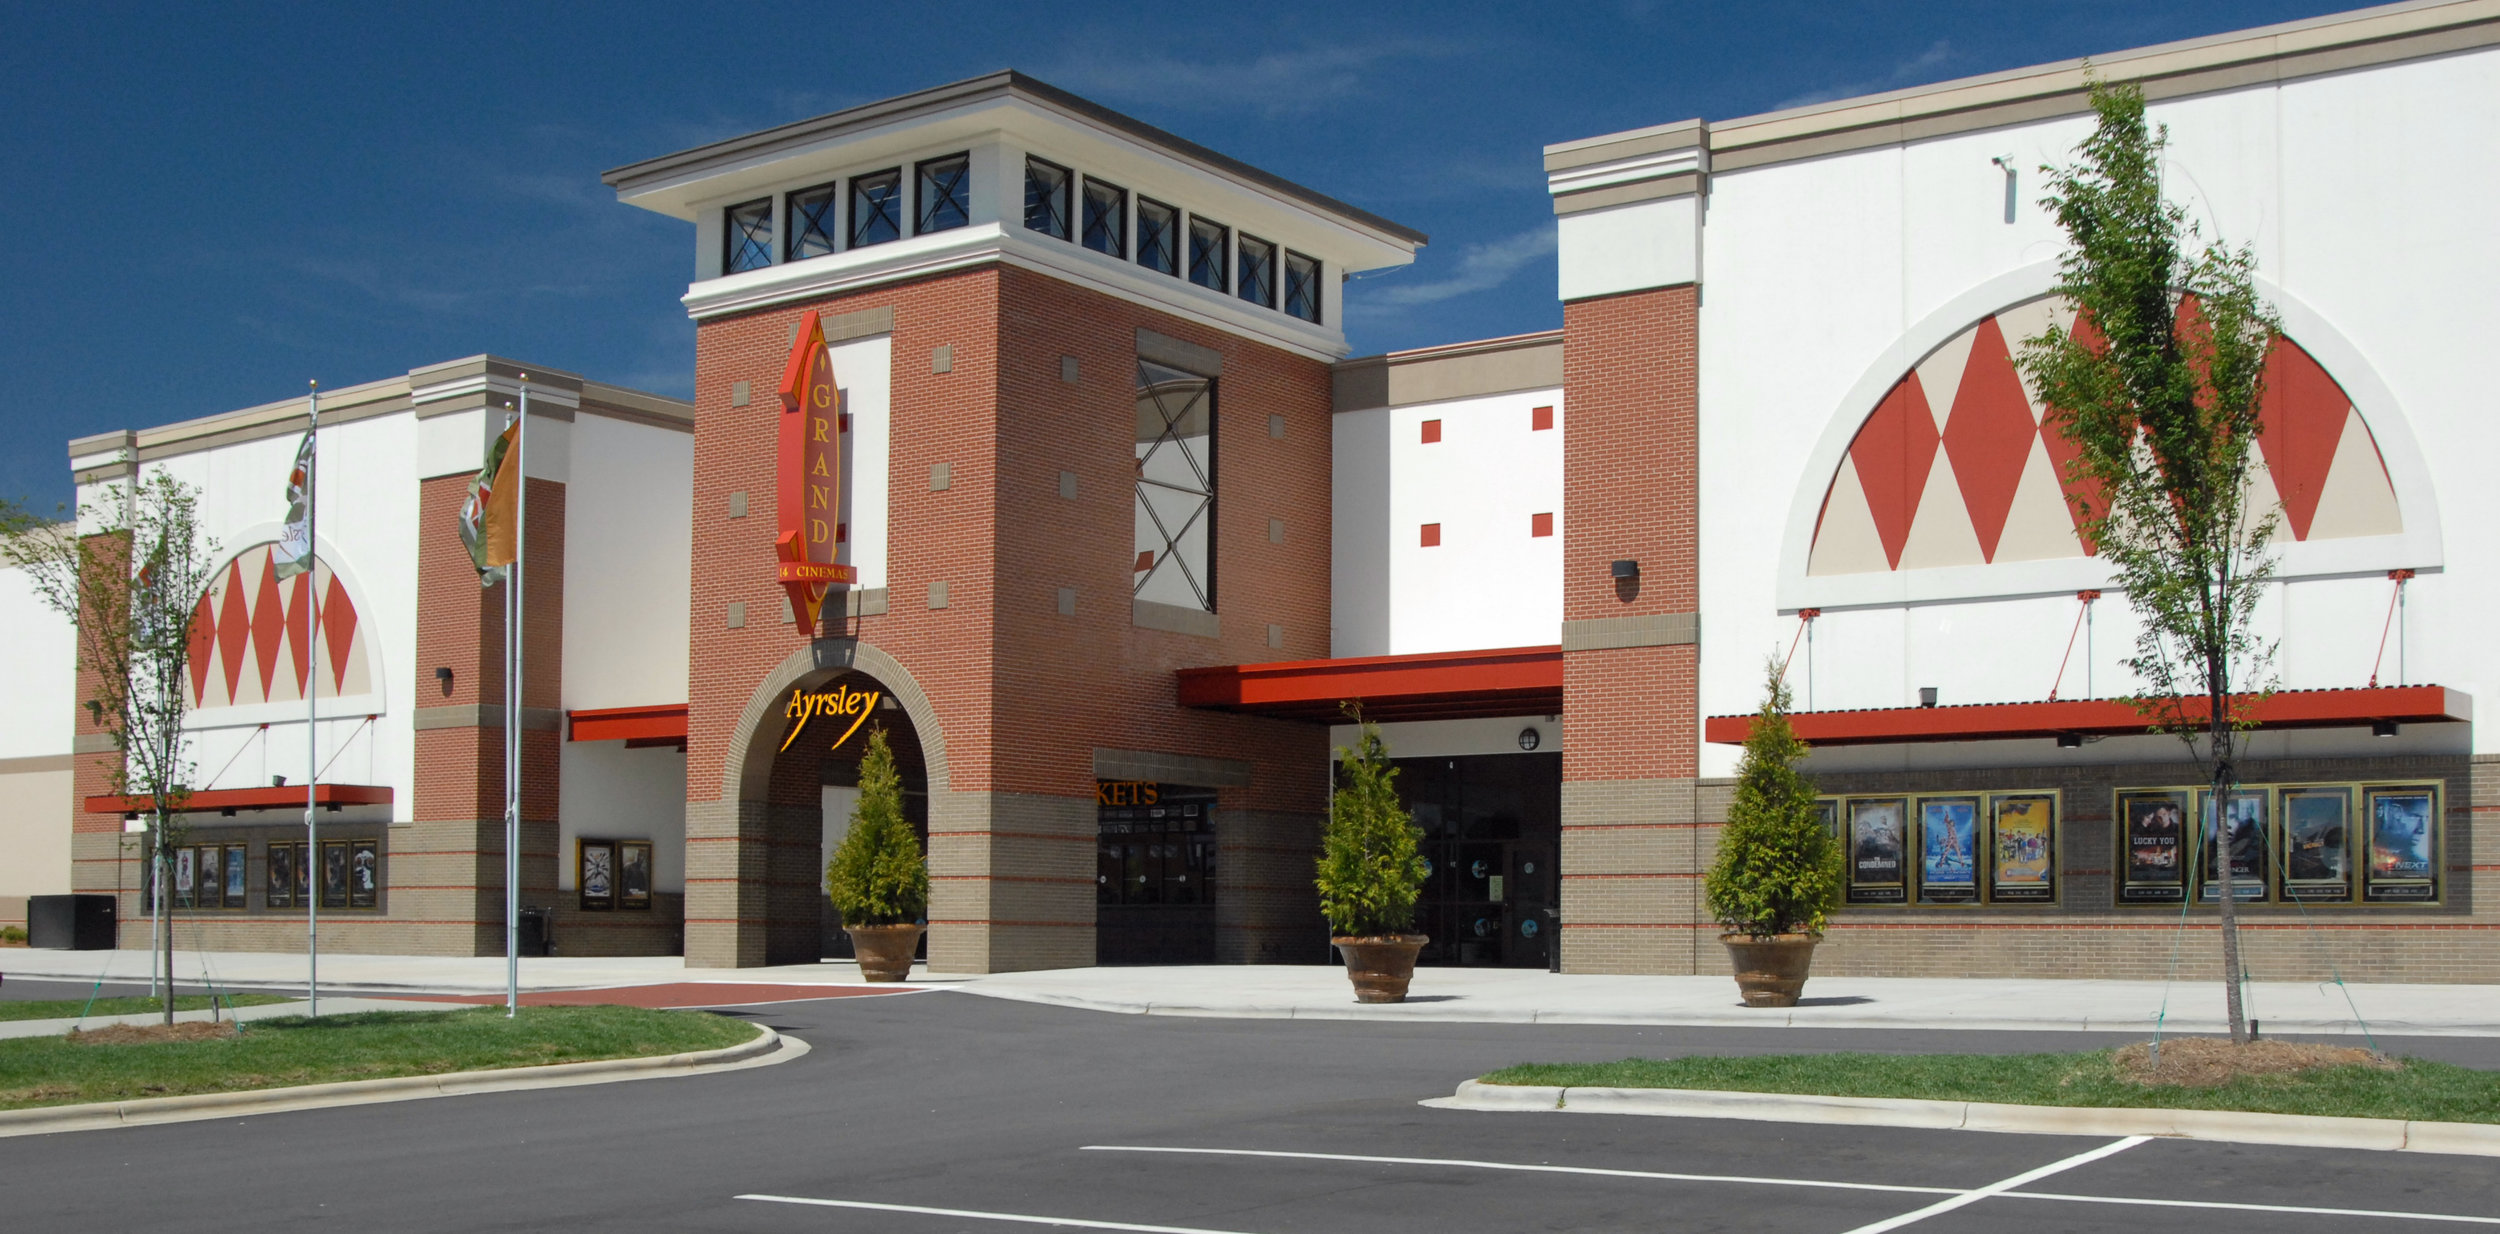 Ayrsley Town Center Charlotte, NC